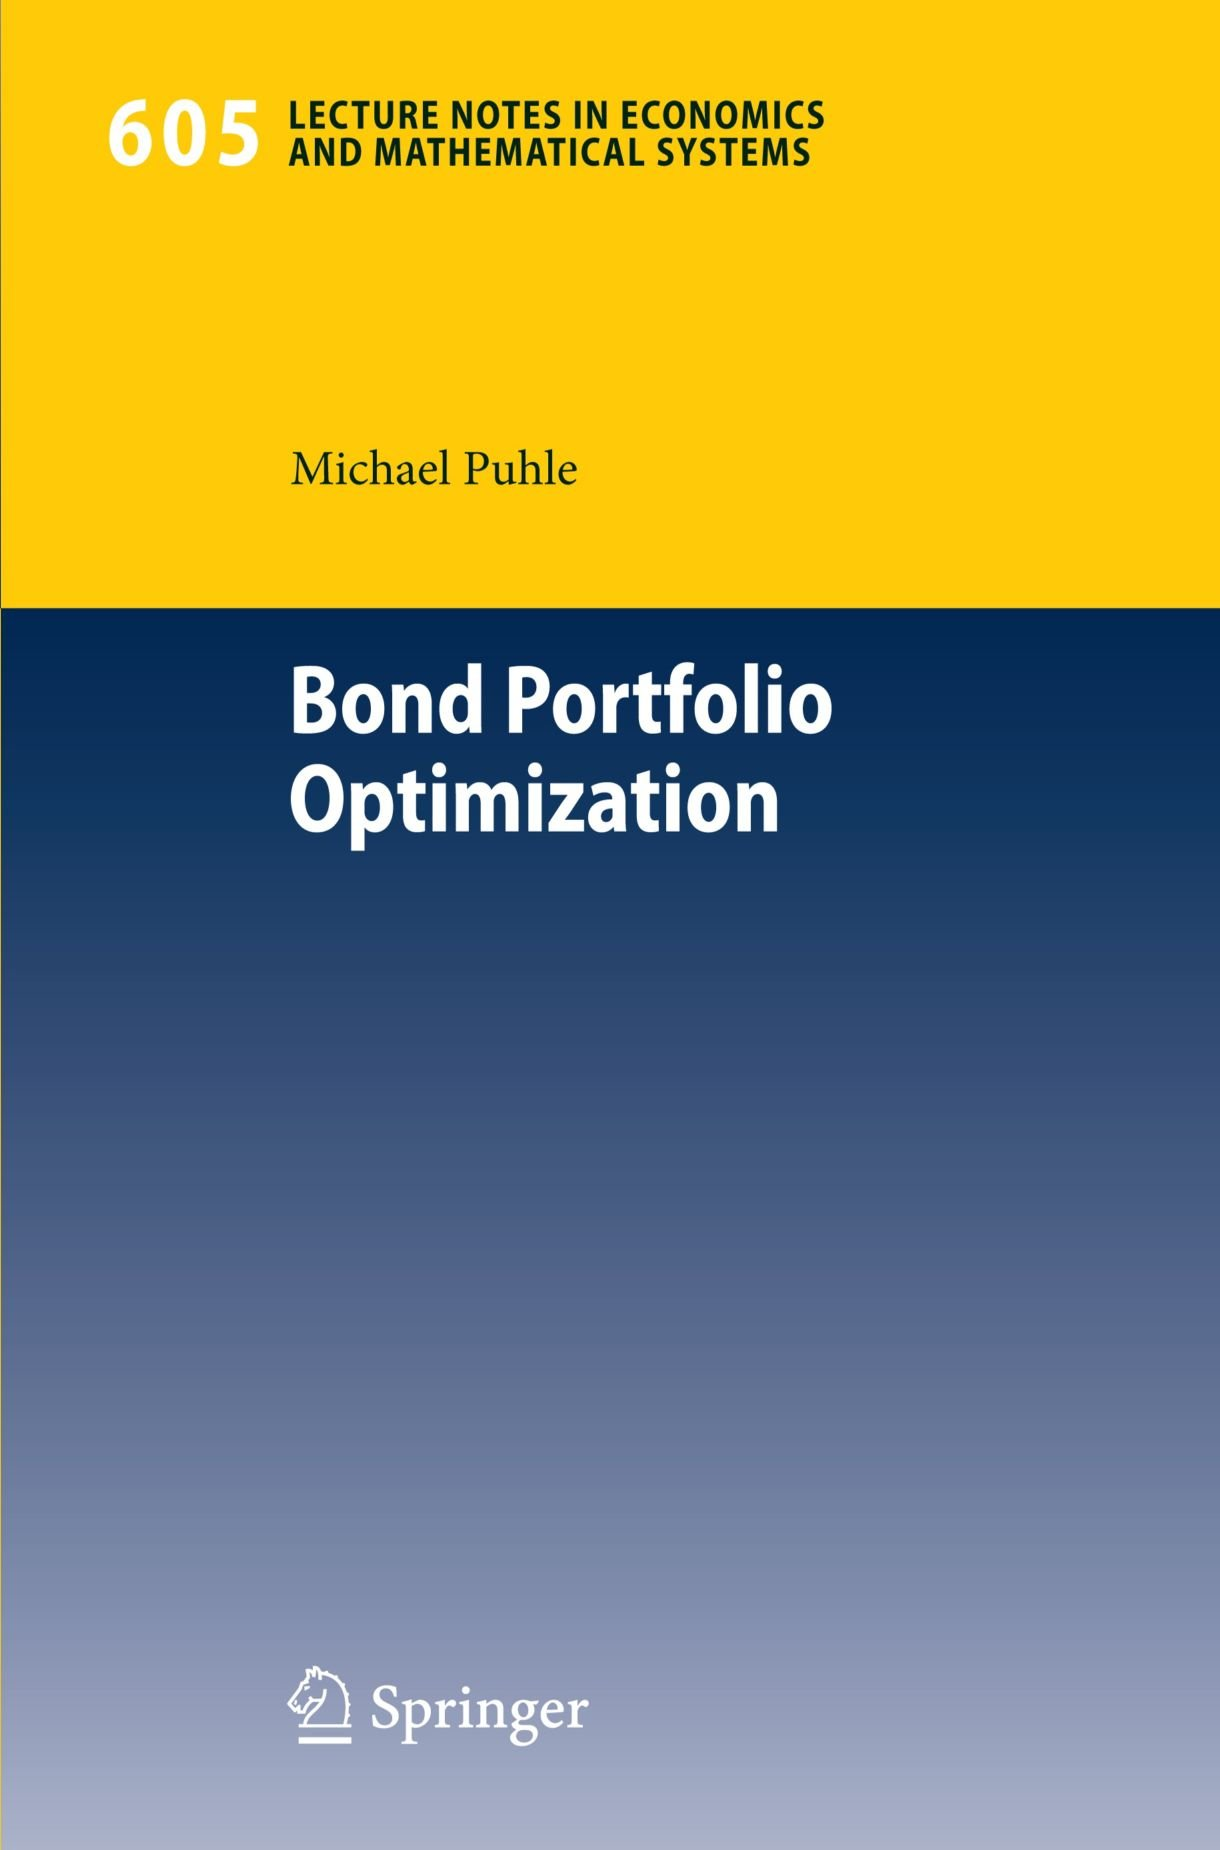 Bond Portfolio Optimization (Lecture Notes in Economics and Mathematical Systems)